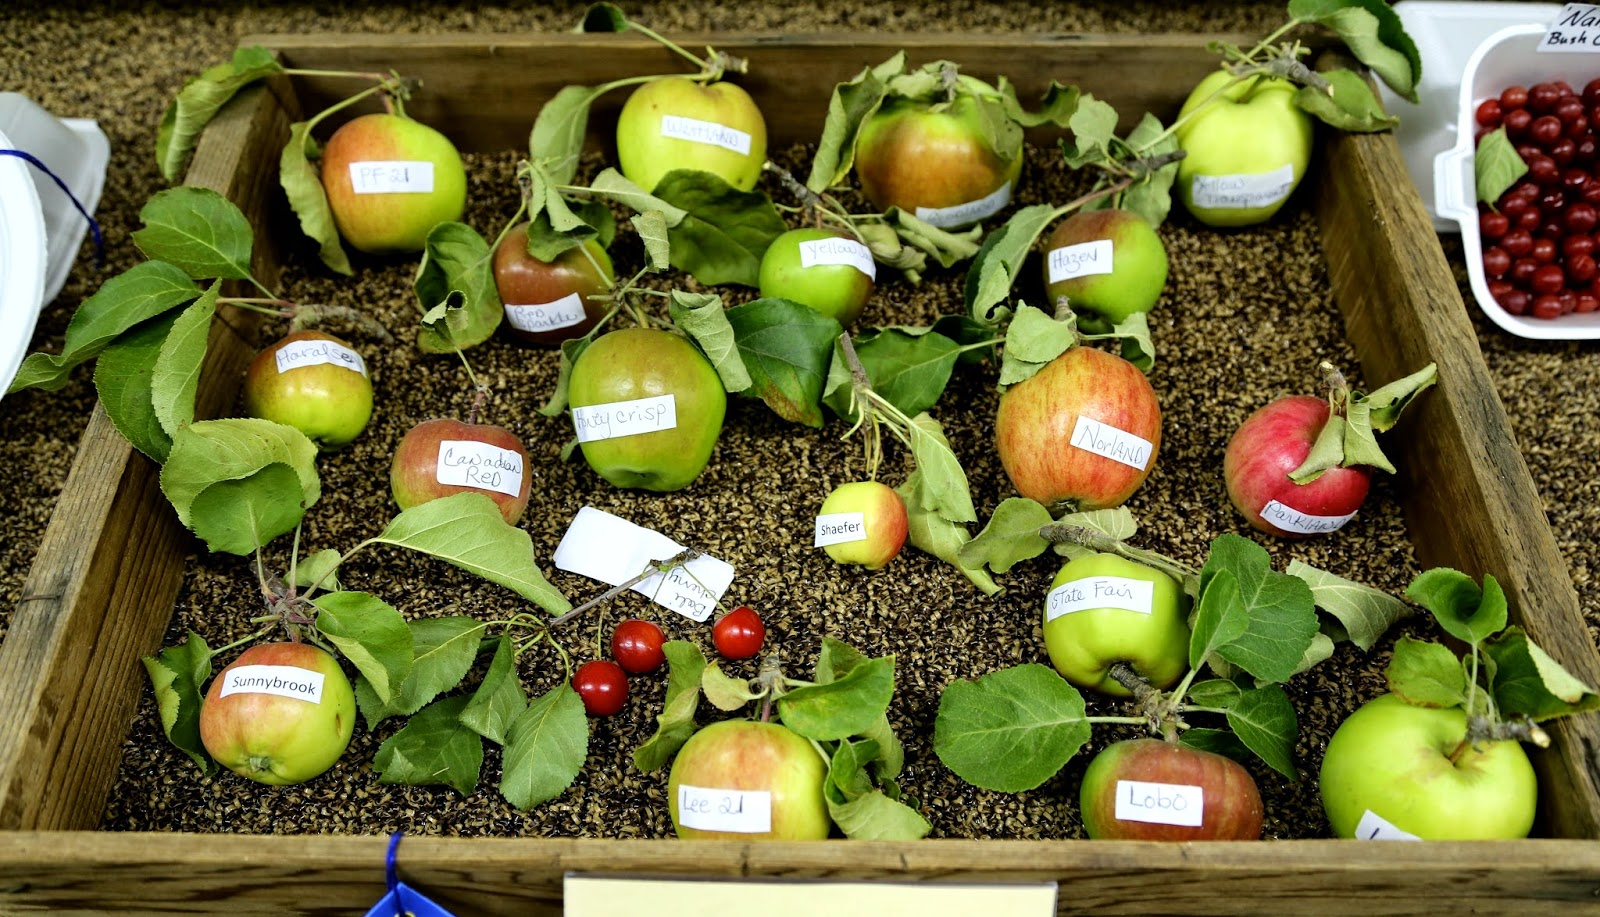 Different varieties of Alaskan apples